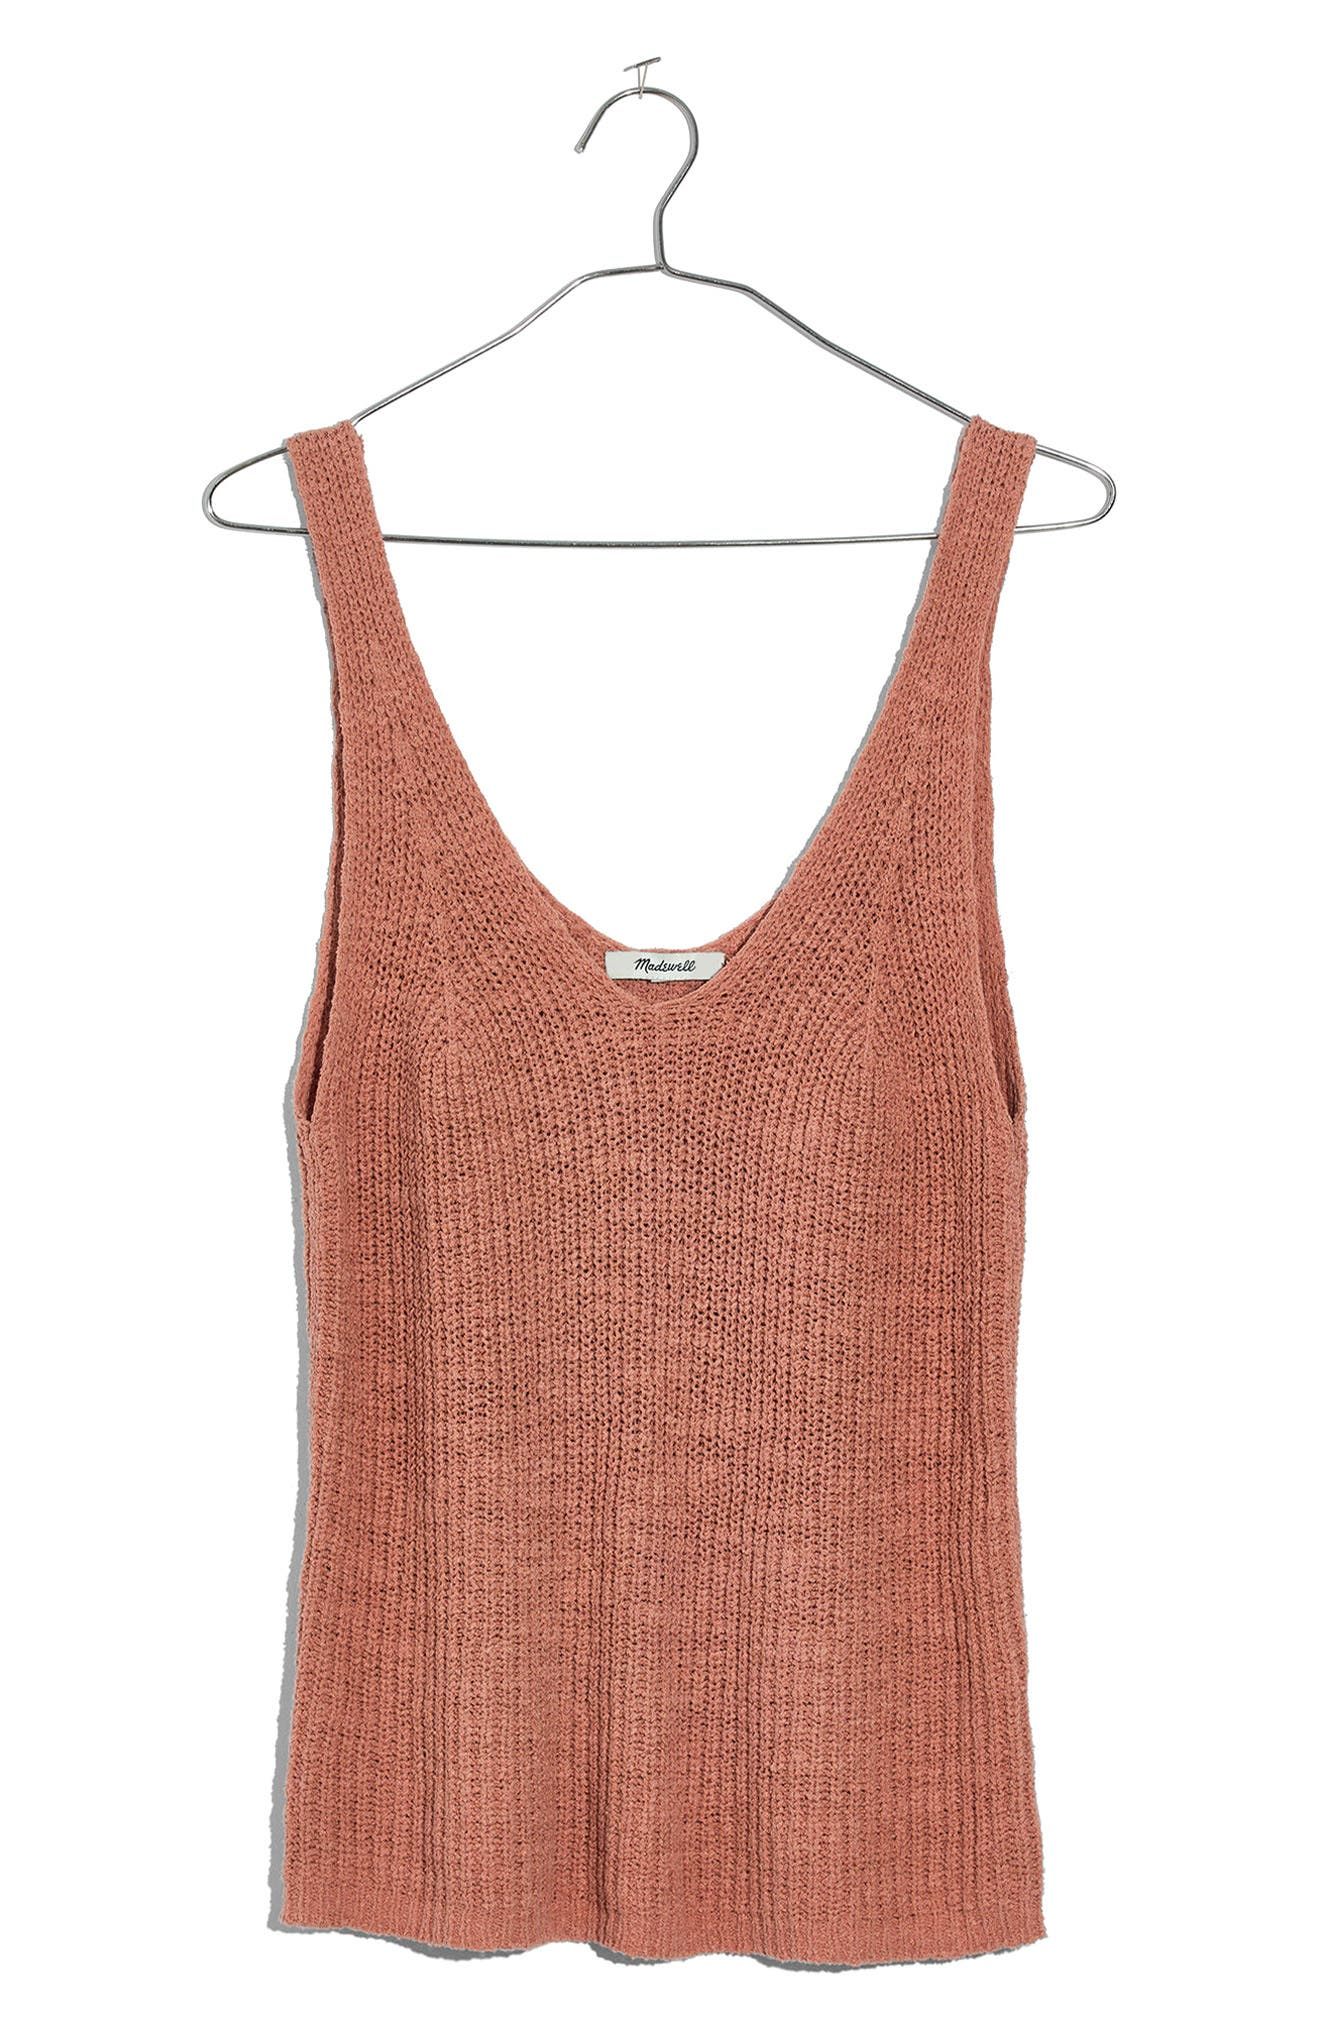 Monterey Sweater Tank,                         Main,                         color, Antique Coral